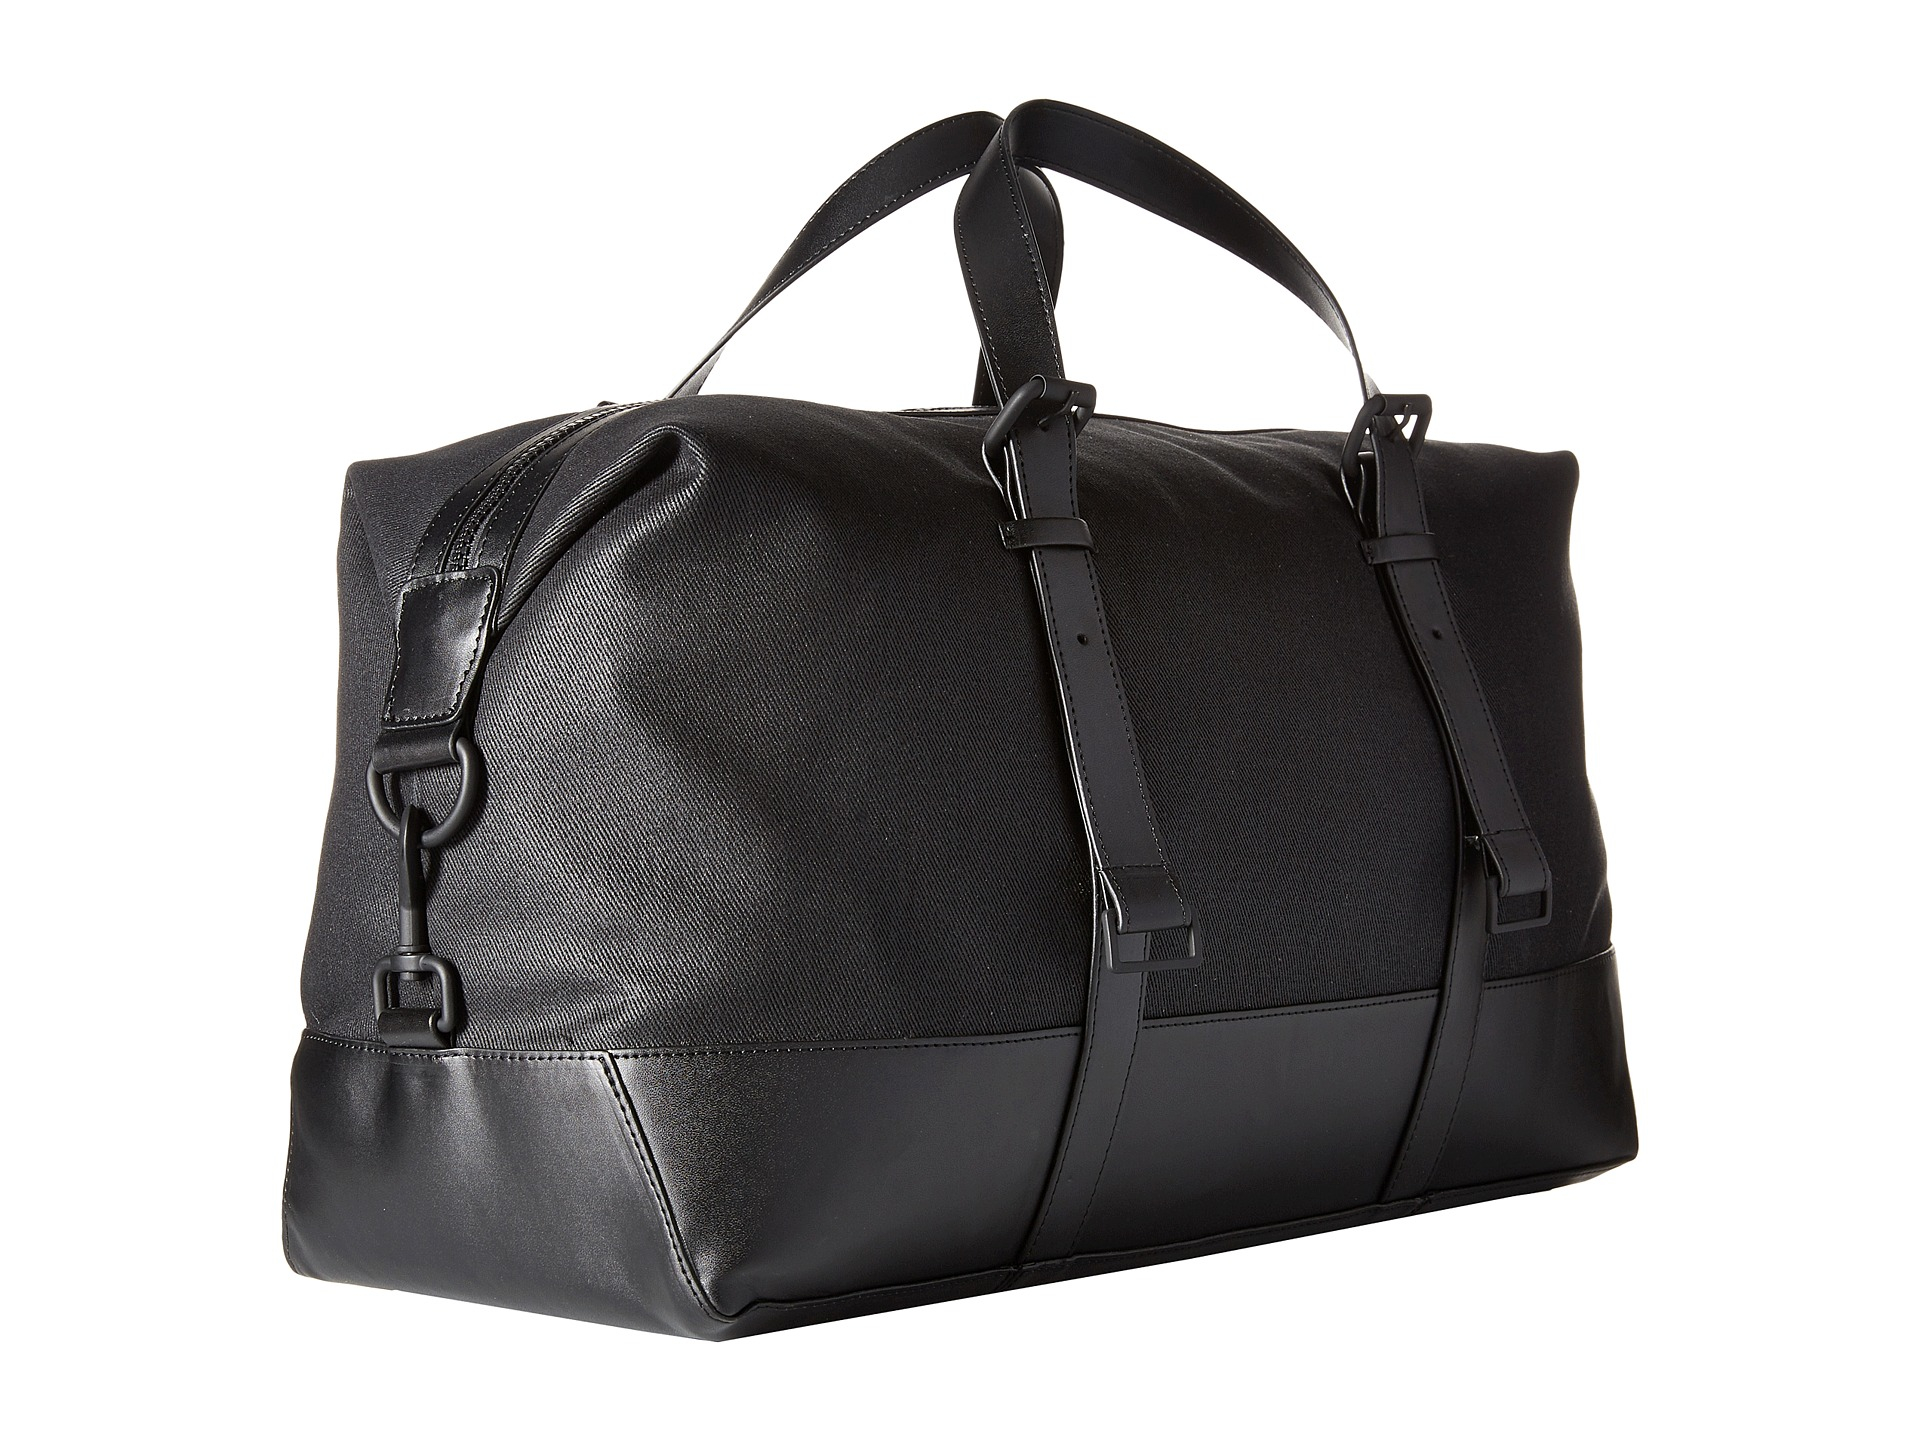 bfe2fca5c21 Calvin Klein Coated Canvas Duffel Bag in Black for Men - Lyst